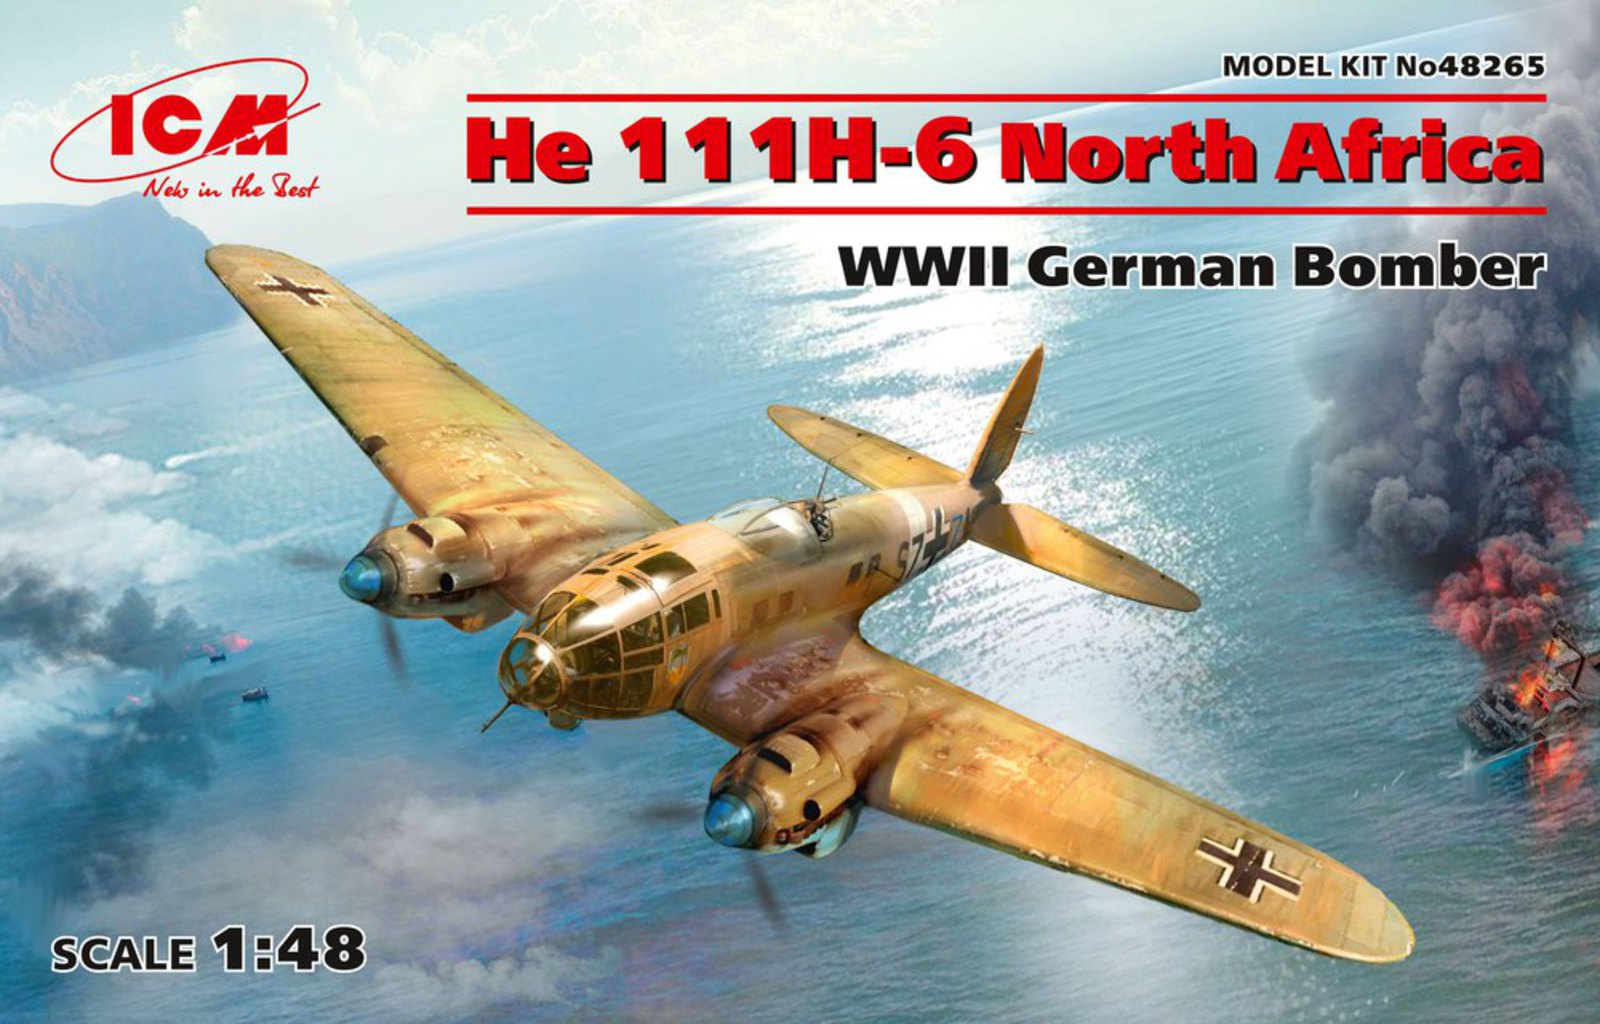 ICM He 111H-6 North Africa, WWII German Bomber